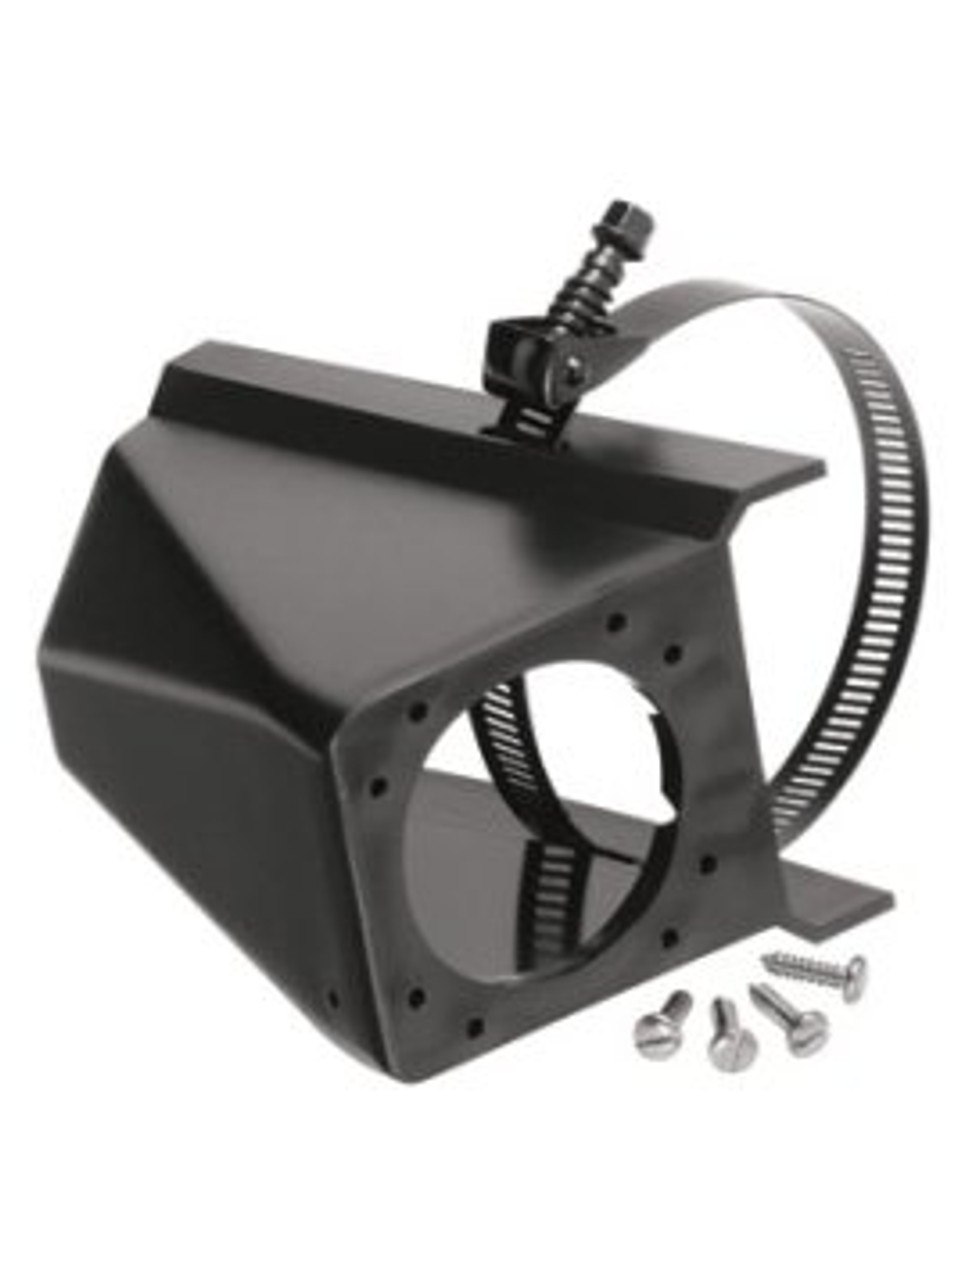 118157 --- Mounting Box for 6-Way and 7-Way Connectors